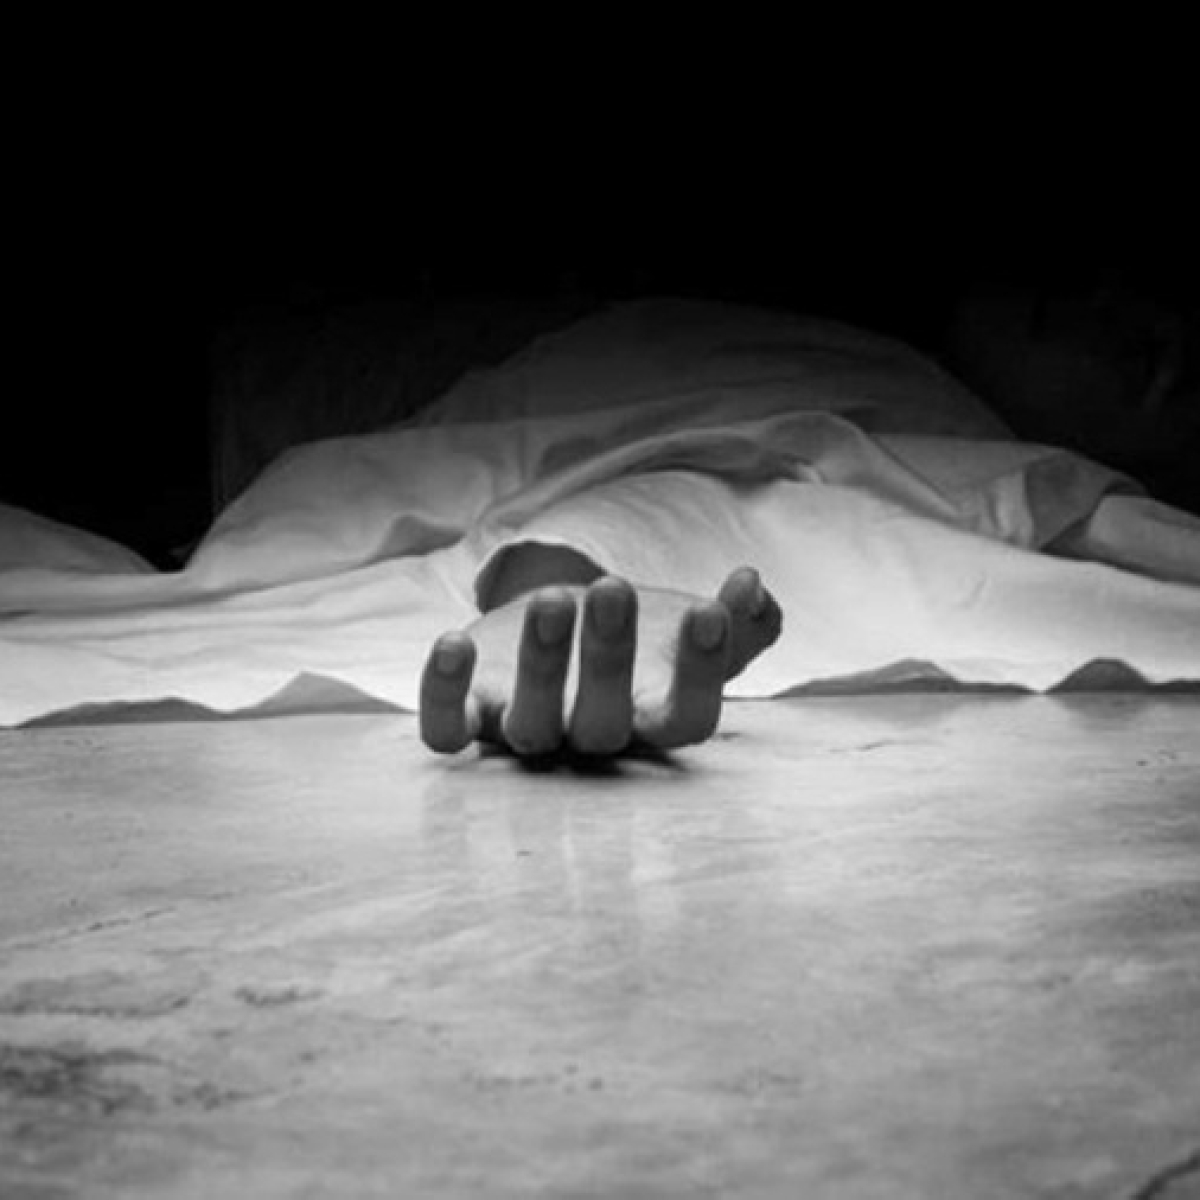 49-year-old police constable killed after truck hits his bike in Navi Mumbai